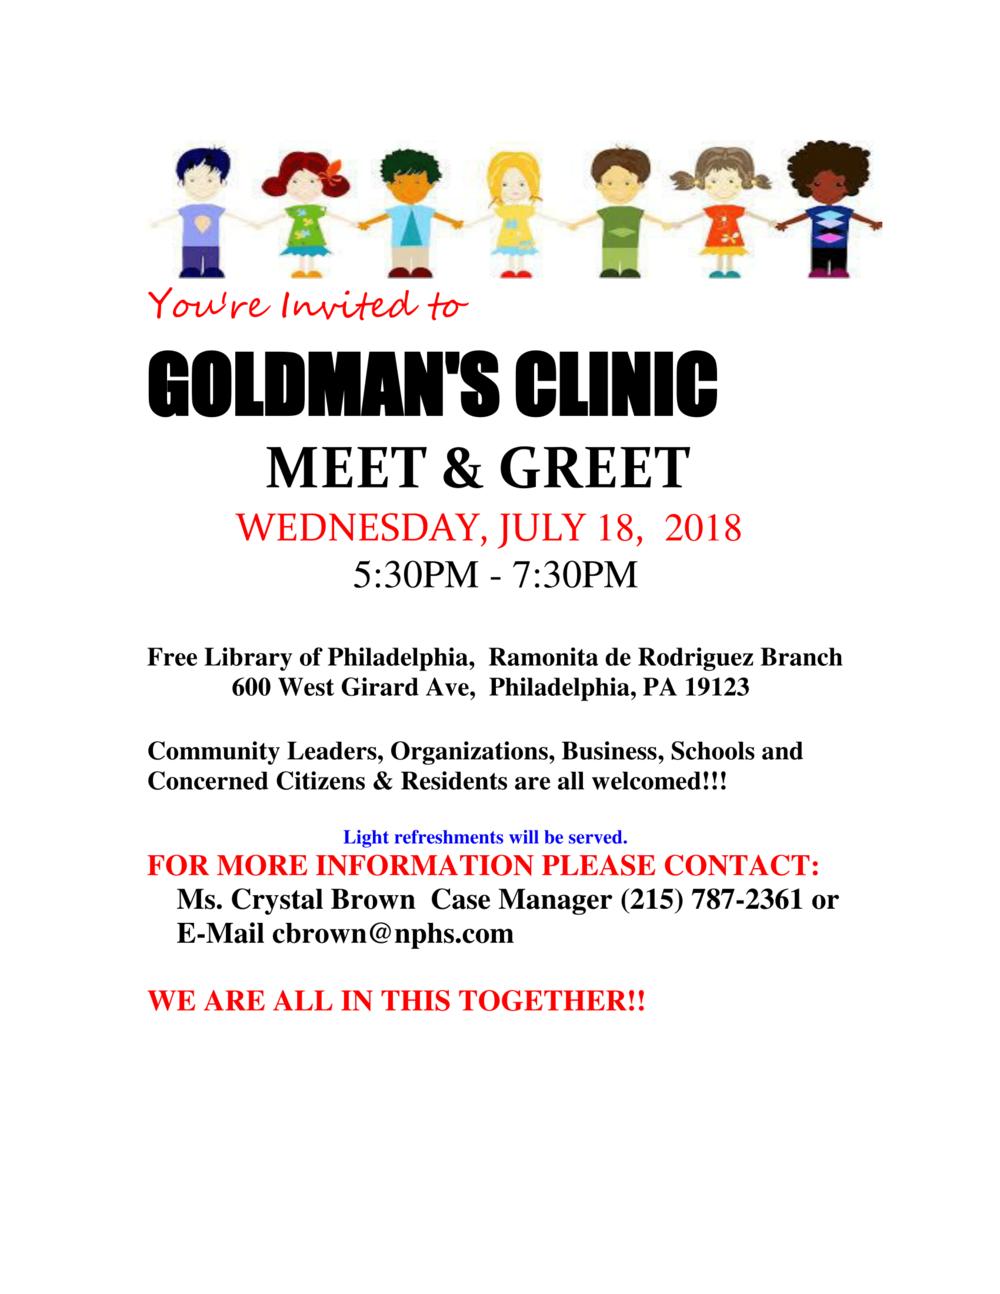 MEET & GREET FLYER Golman center-1.png